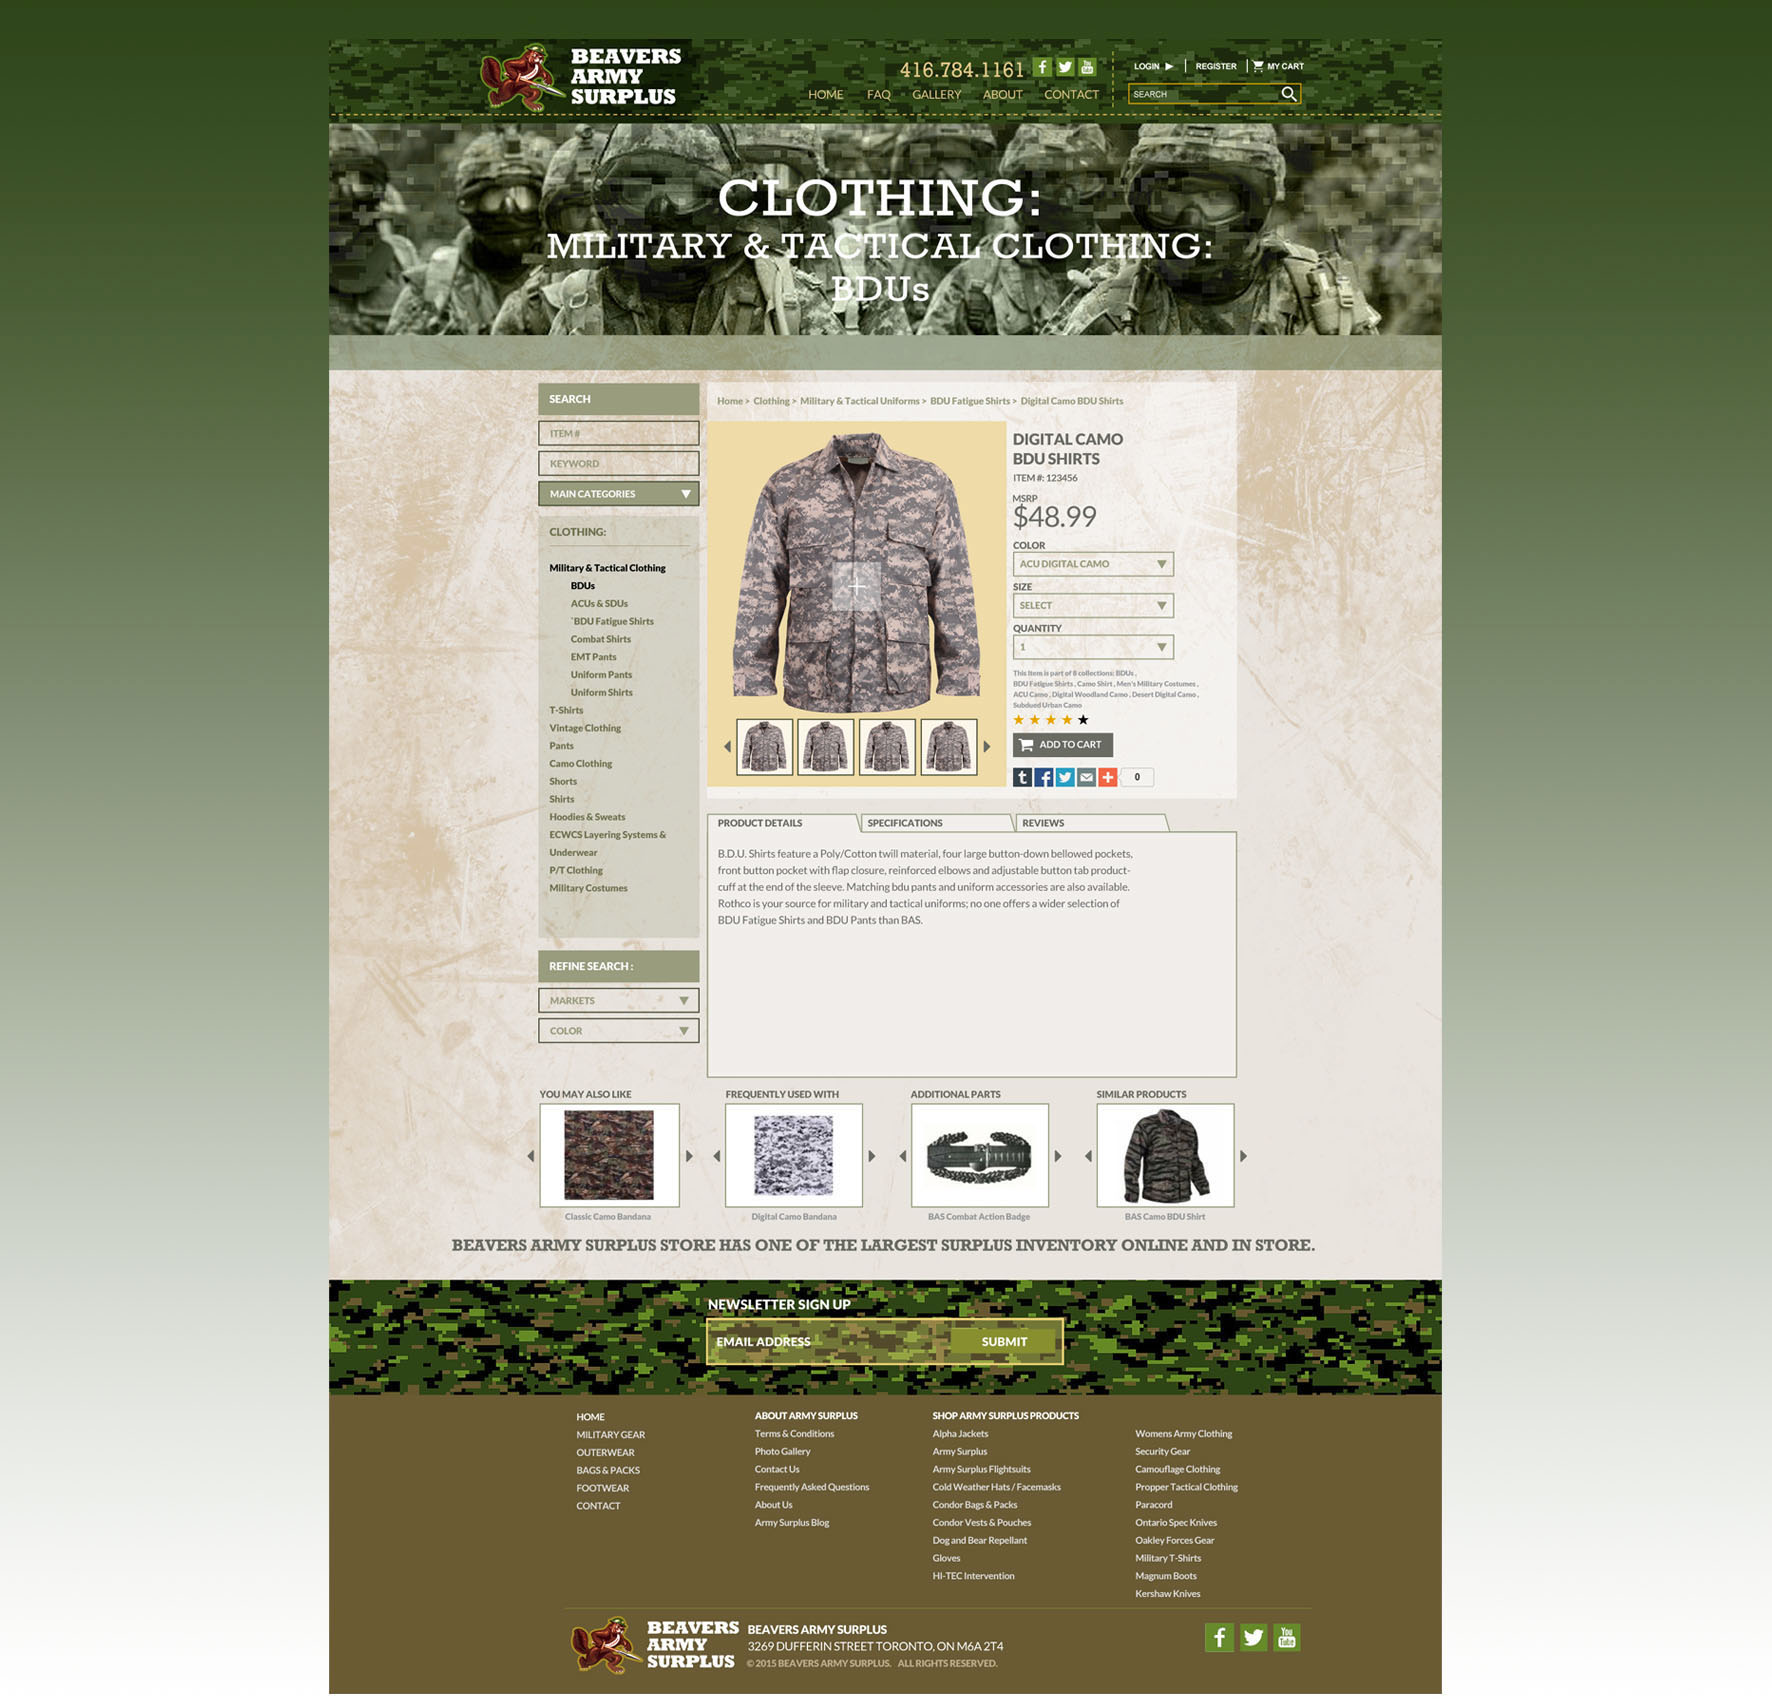 Beaver Army Surplus Website Design on Behance